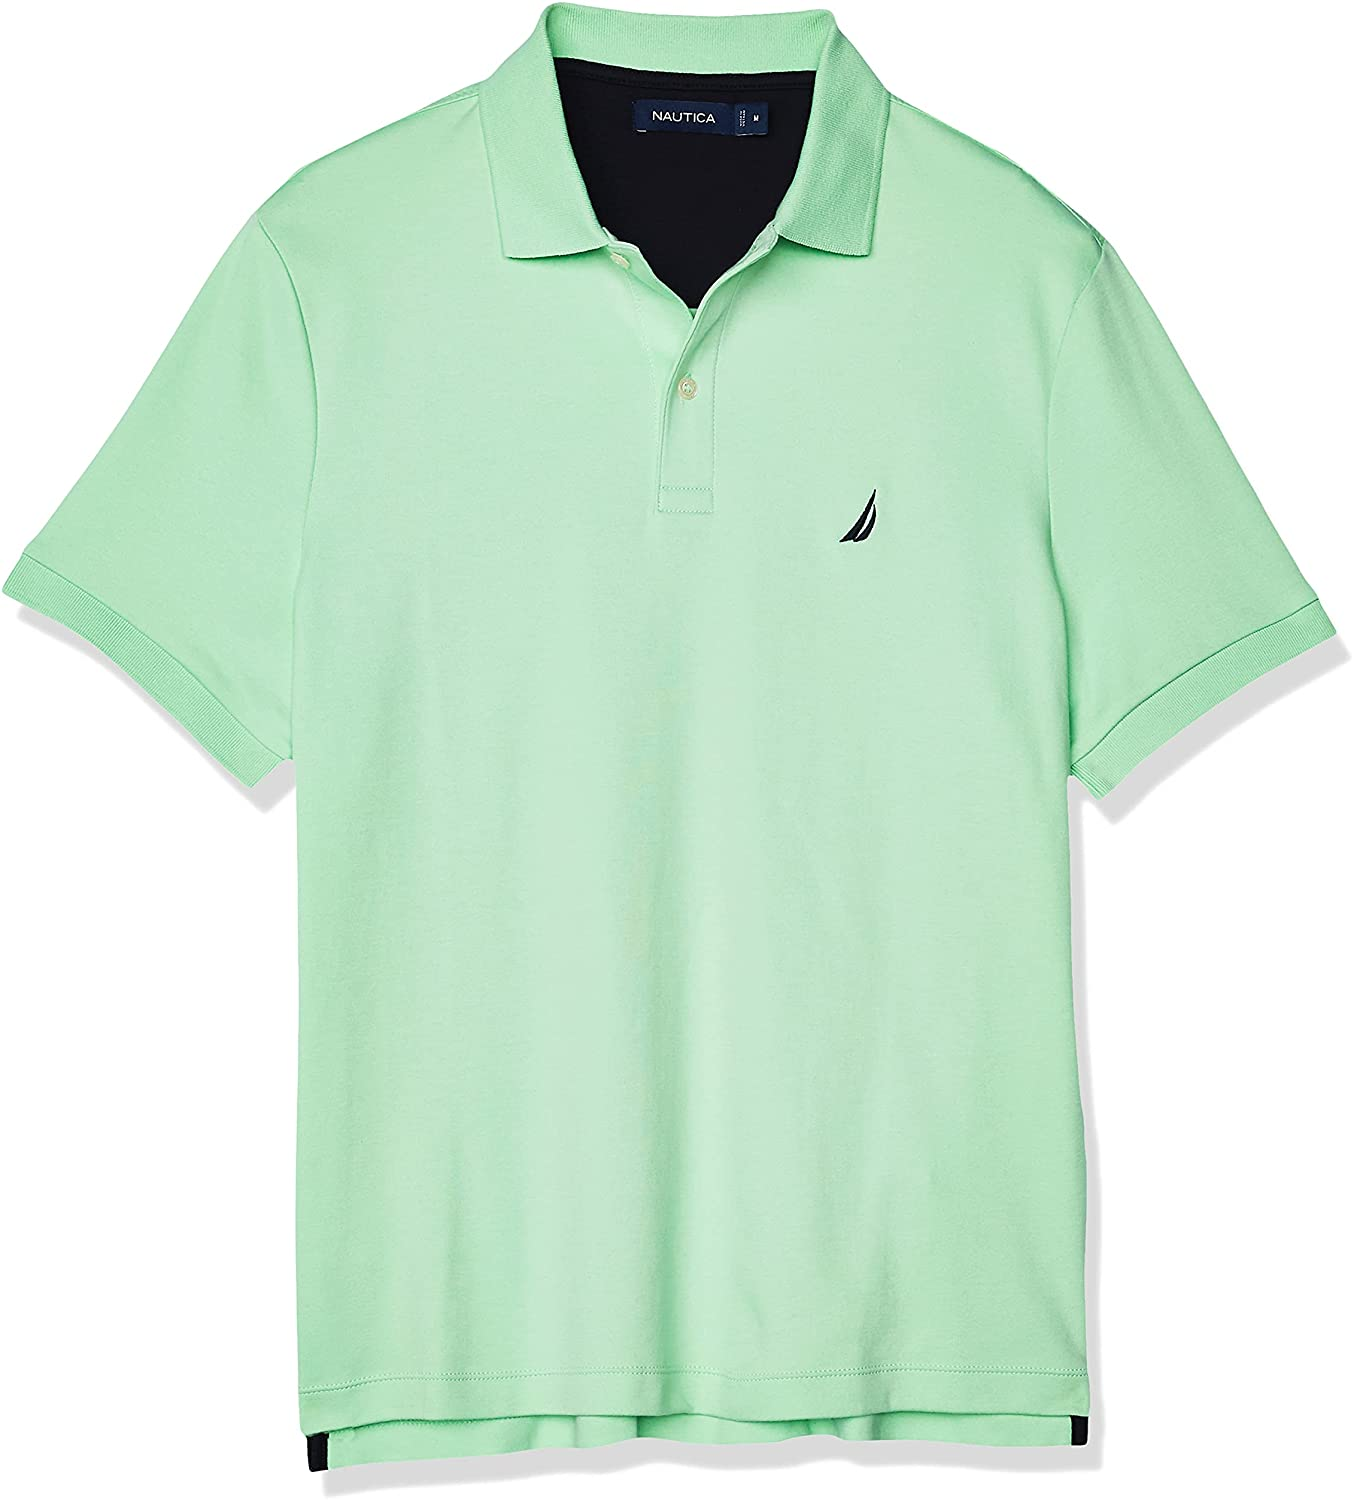 Nautica Men's Classic Fit Short Sleeve Polo Free shipping on posting reviews Sh Cotton Solid Soft Free shipping